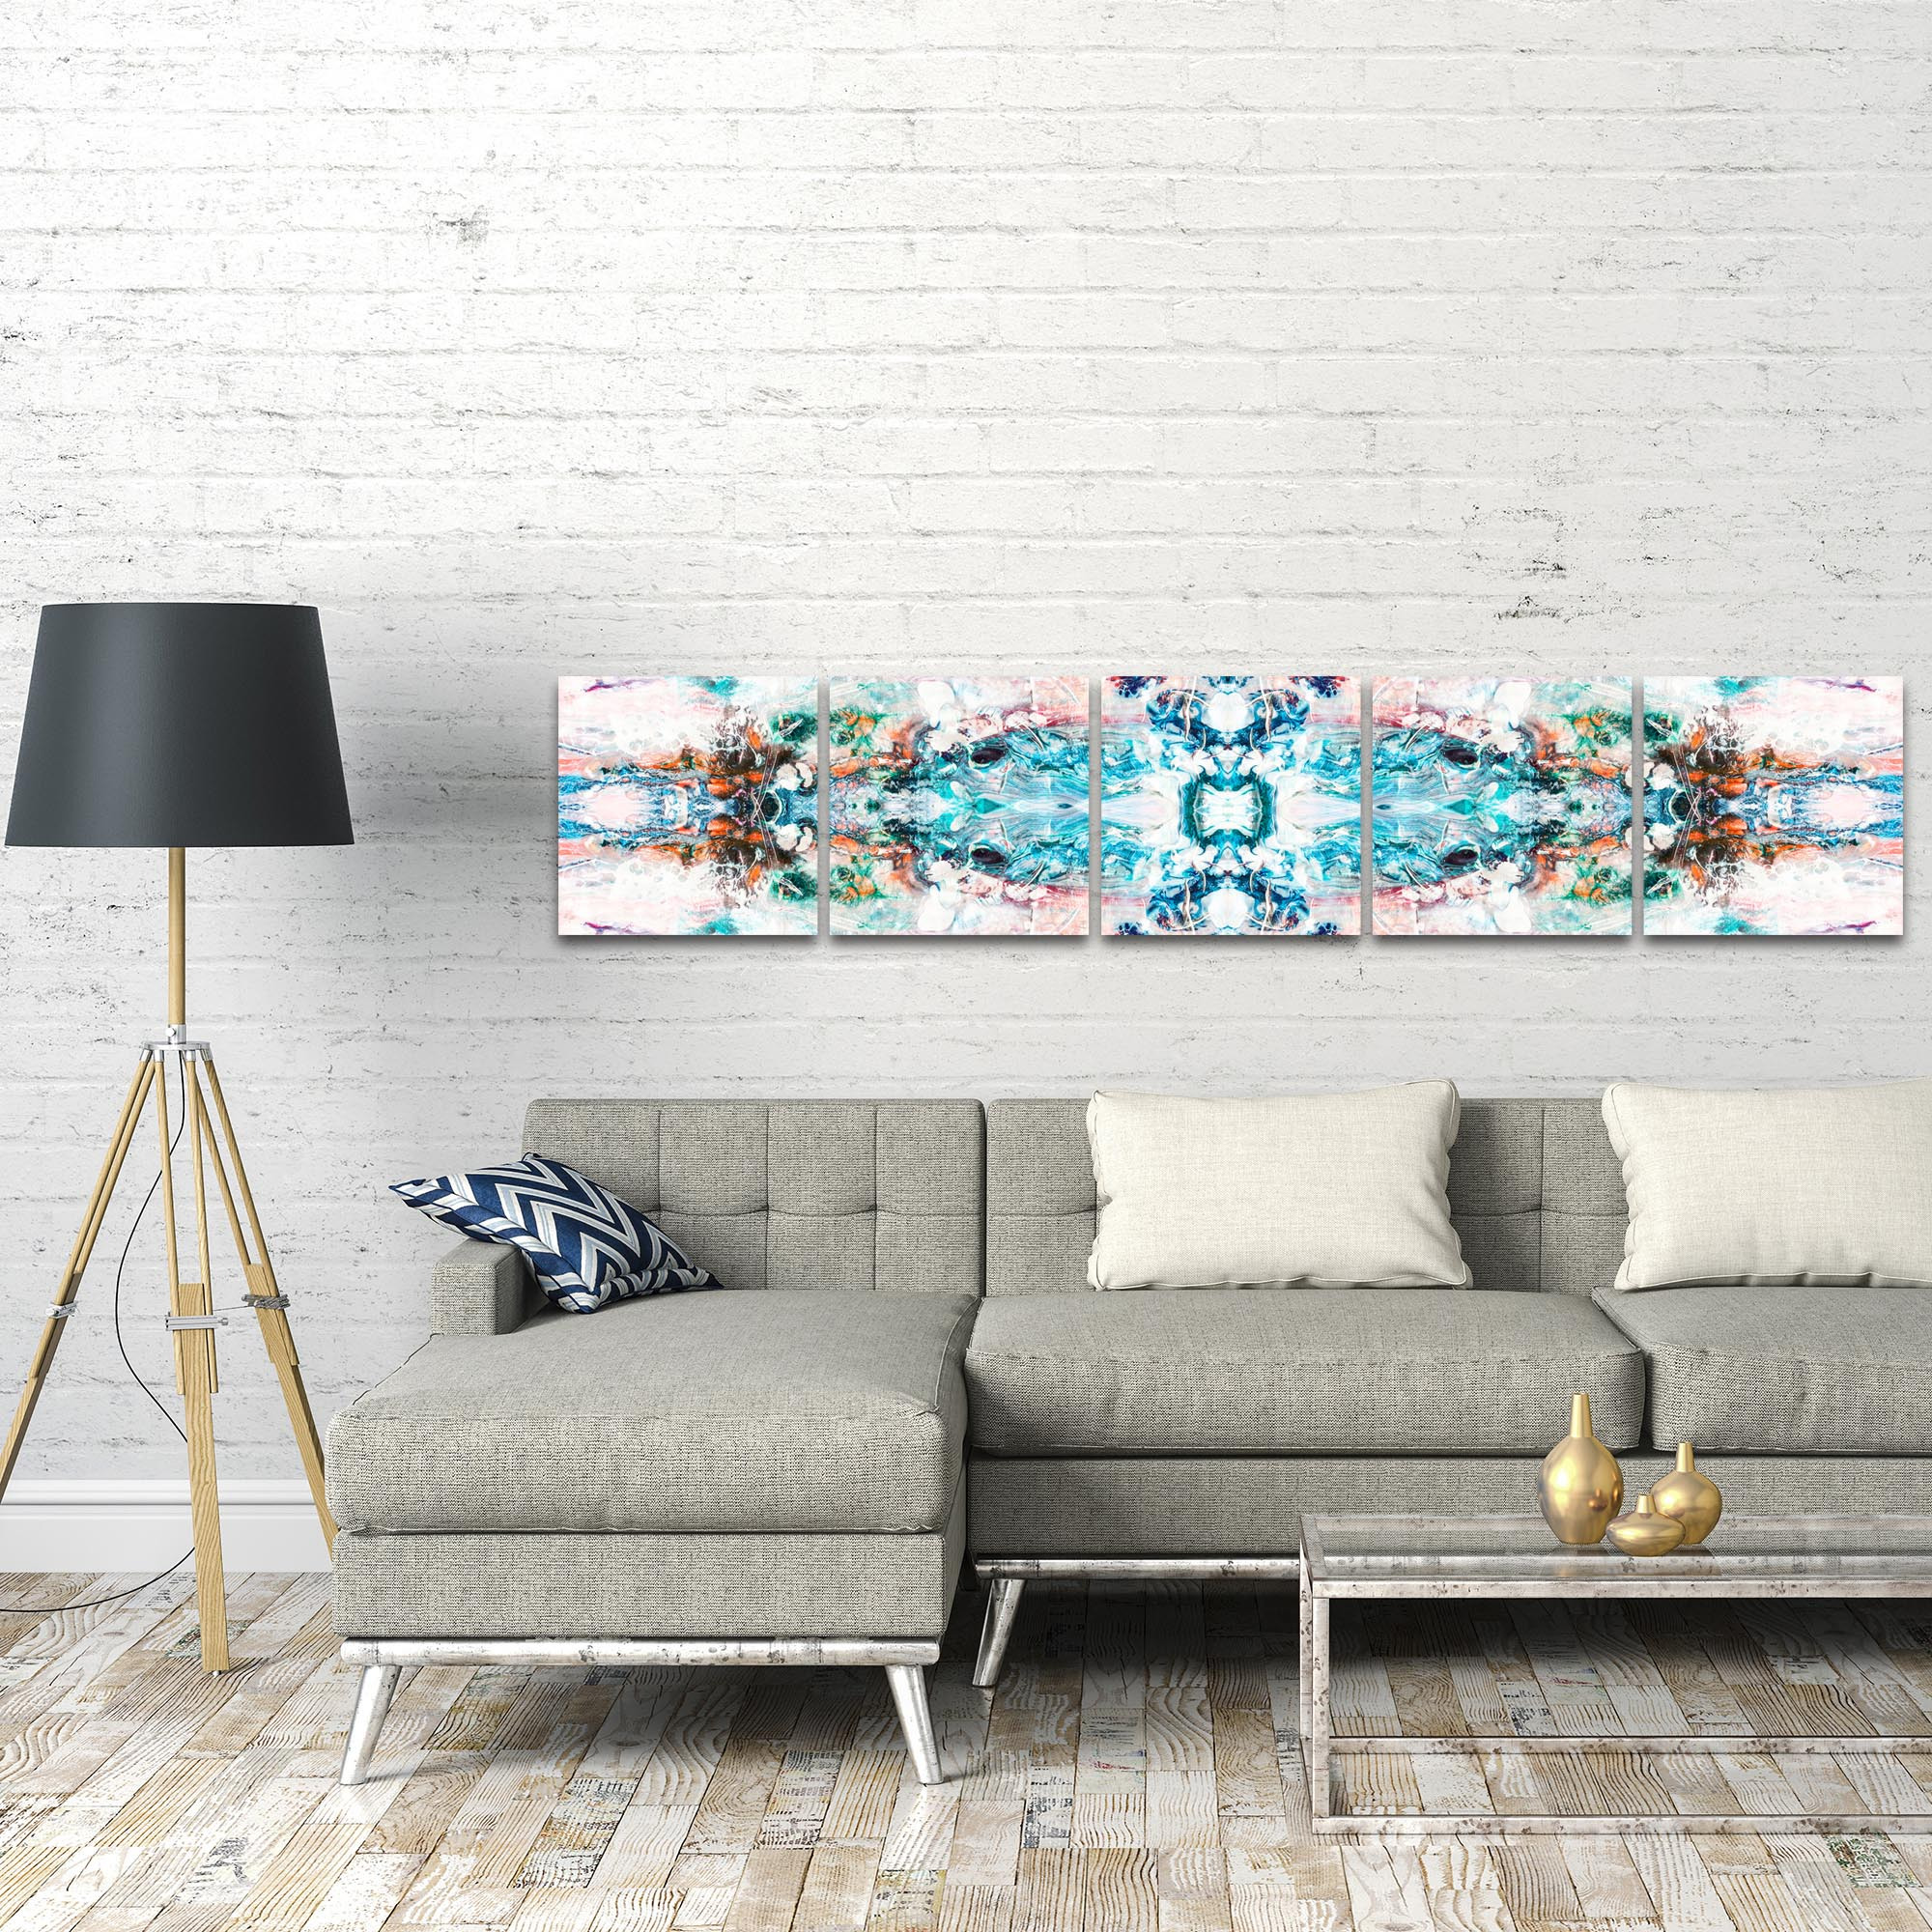 Abstract Wall Art 'Celestial' - Colorful Urban Decor on Metal or Plexiglass - Lifestyle View